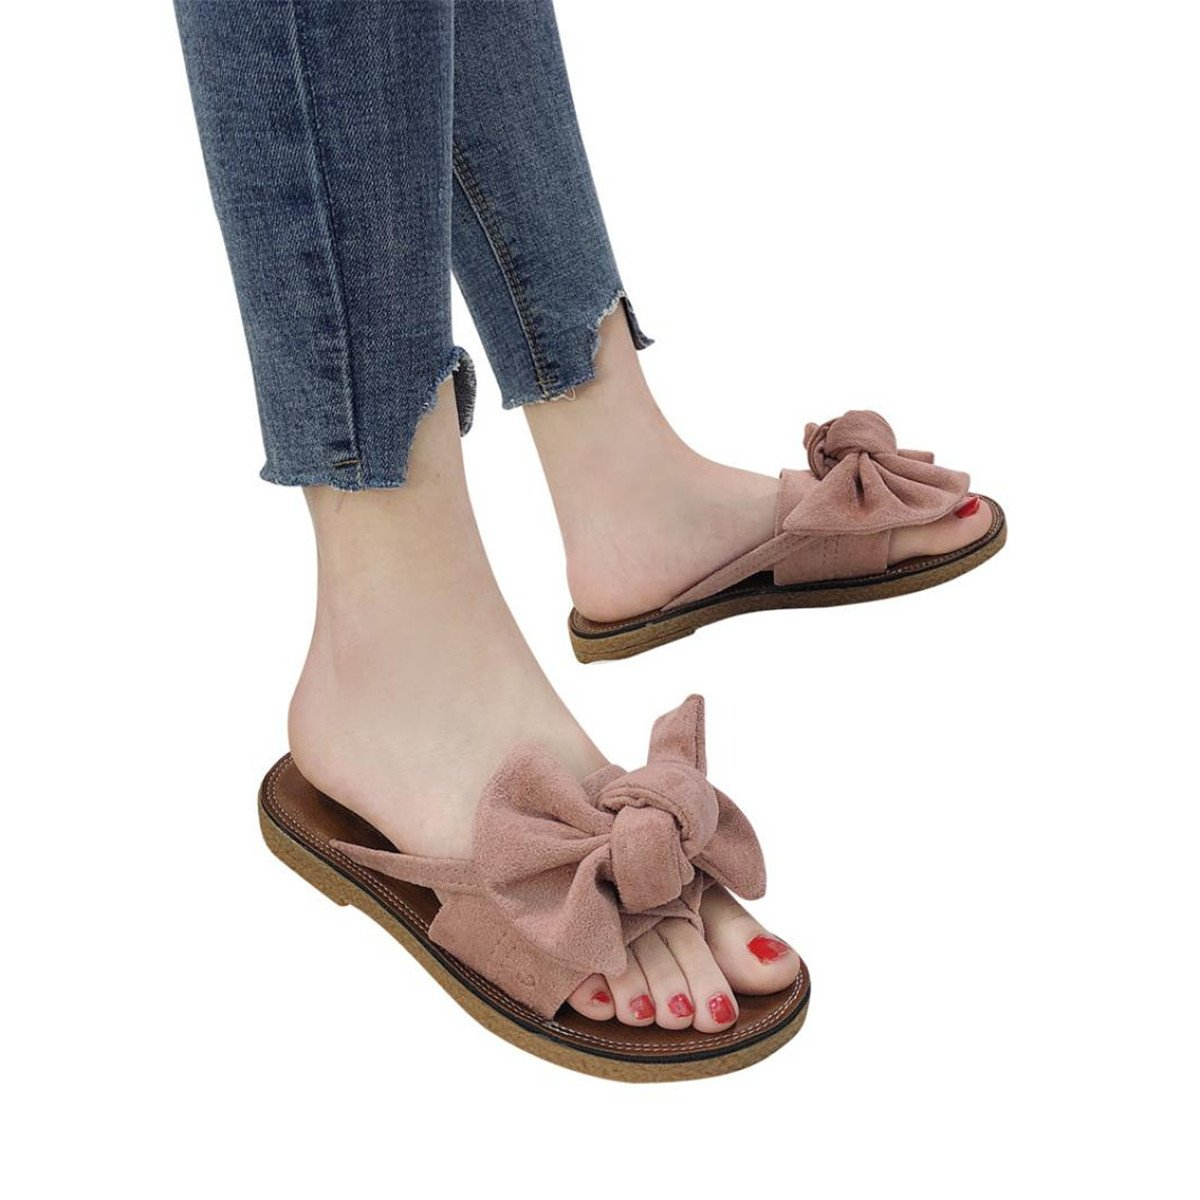 KESEELY Clearance Beach Shoes, Women Flat Heel Sandals Slipper Bow tie Round Toe Casual Flat with Sandal (US:7.5, Pink)